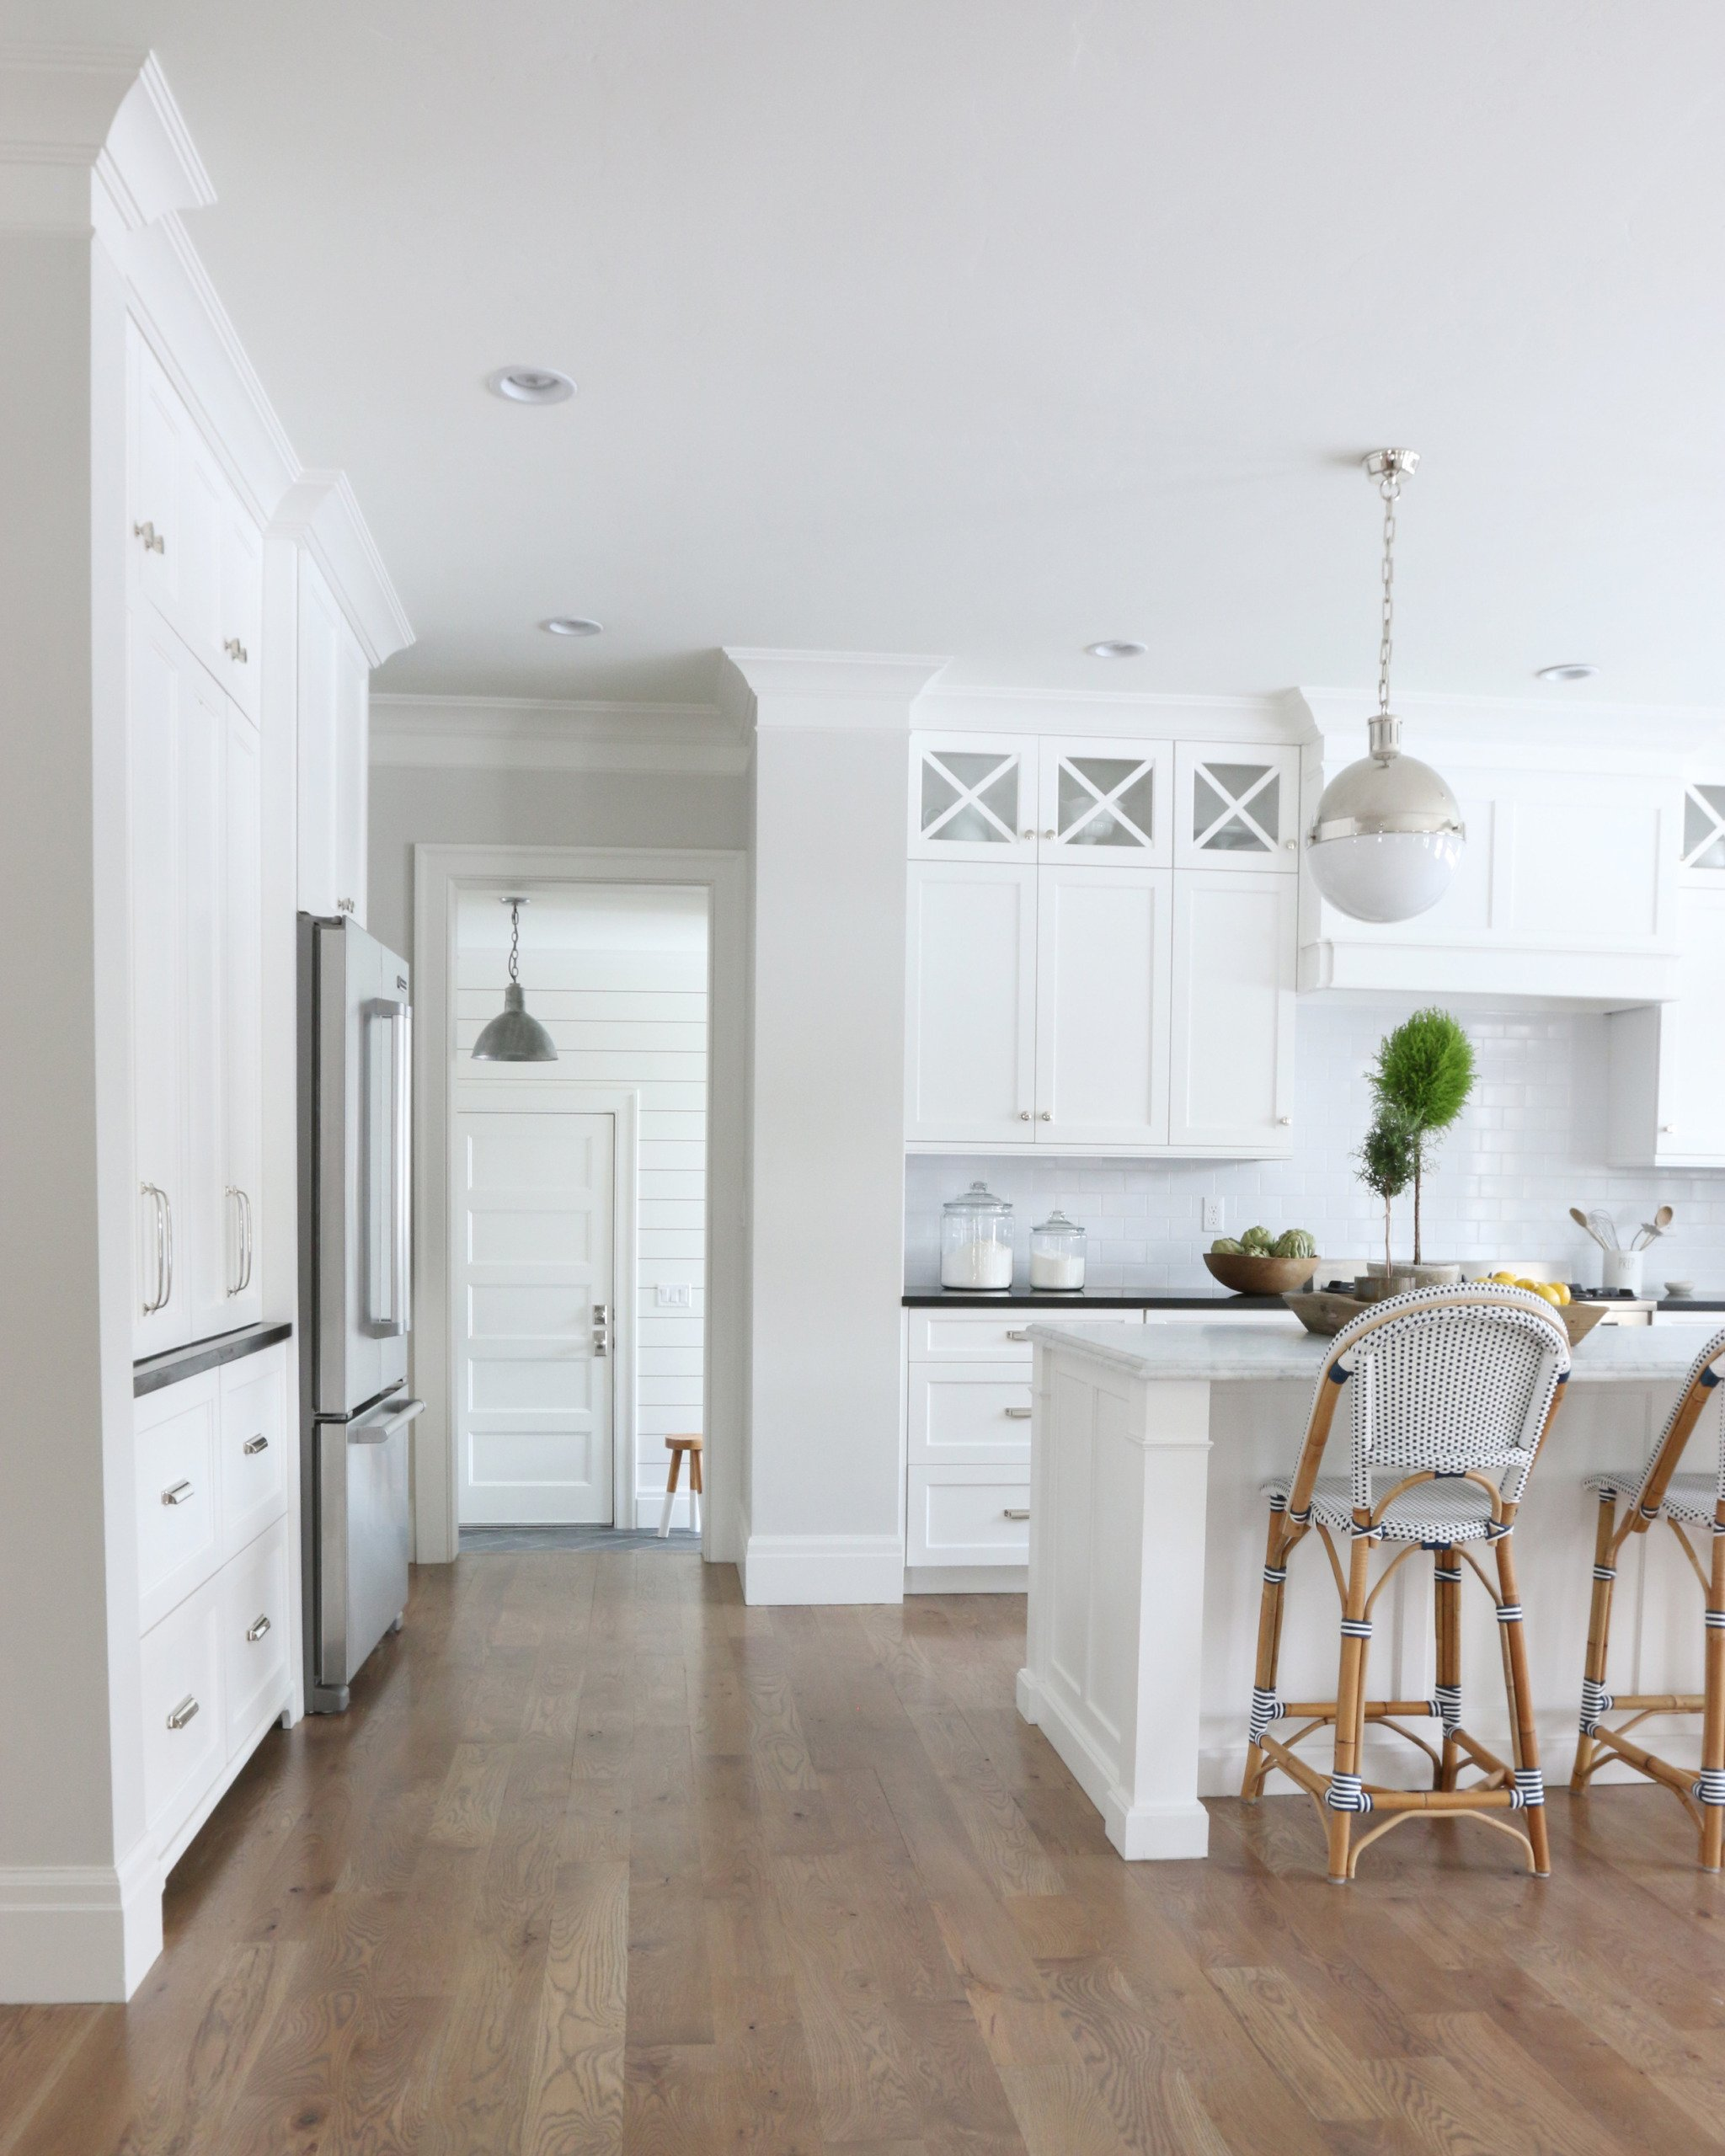 White kitchen cabinets with classic gray paint walls and serena and lily barstools and white subway tile backsplash wood floors